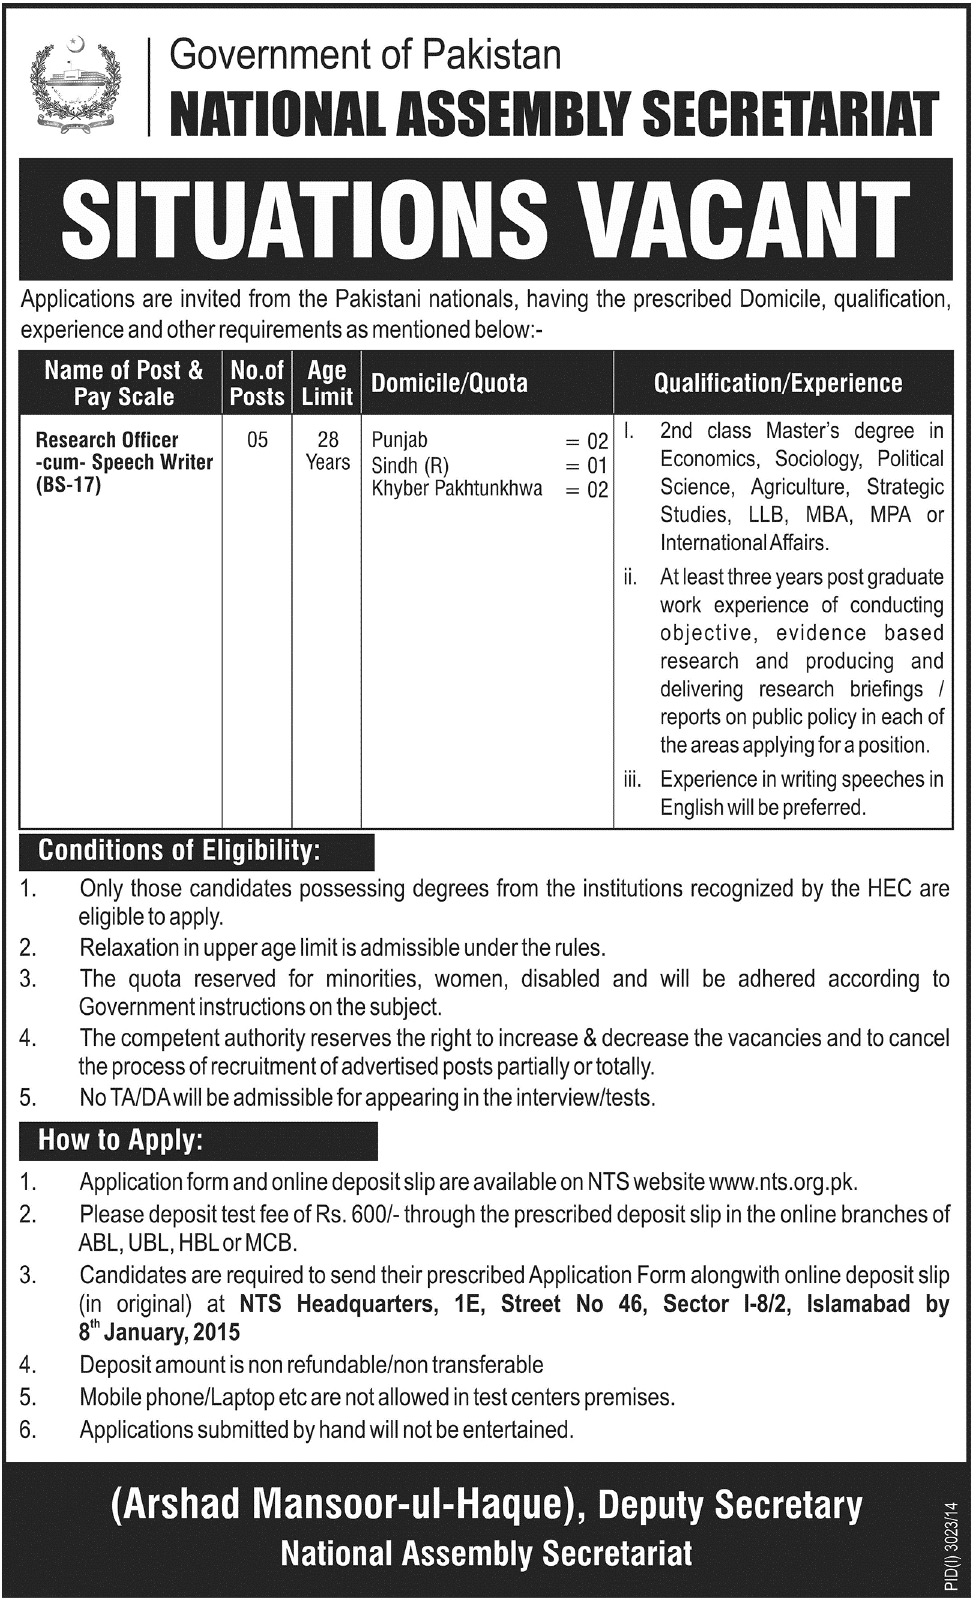 national assembly secretariat jobs nts test registration form national assembly secretariat jobs 2015 nts test registration form dates eligibility